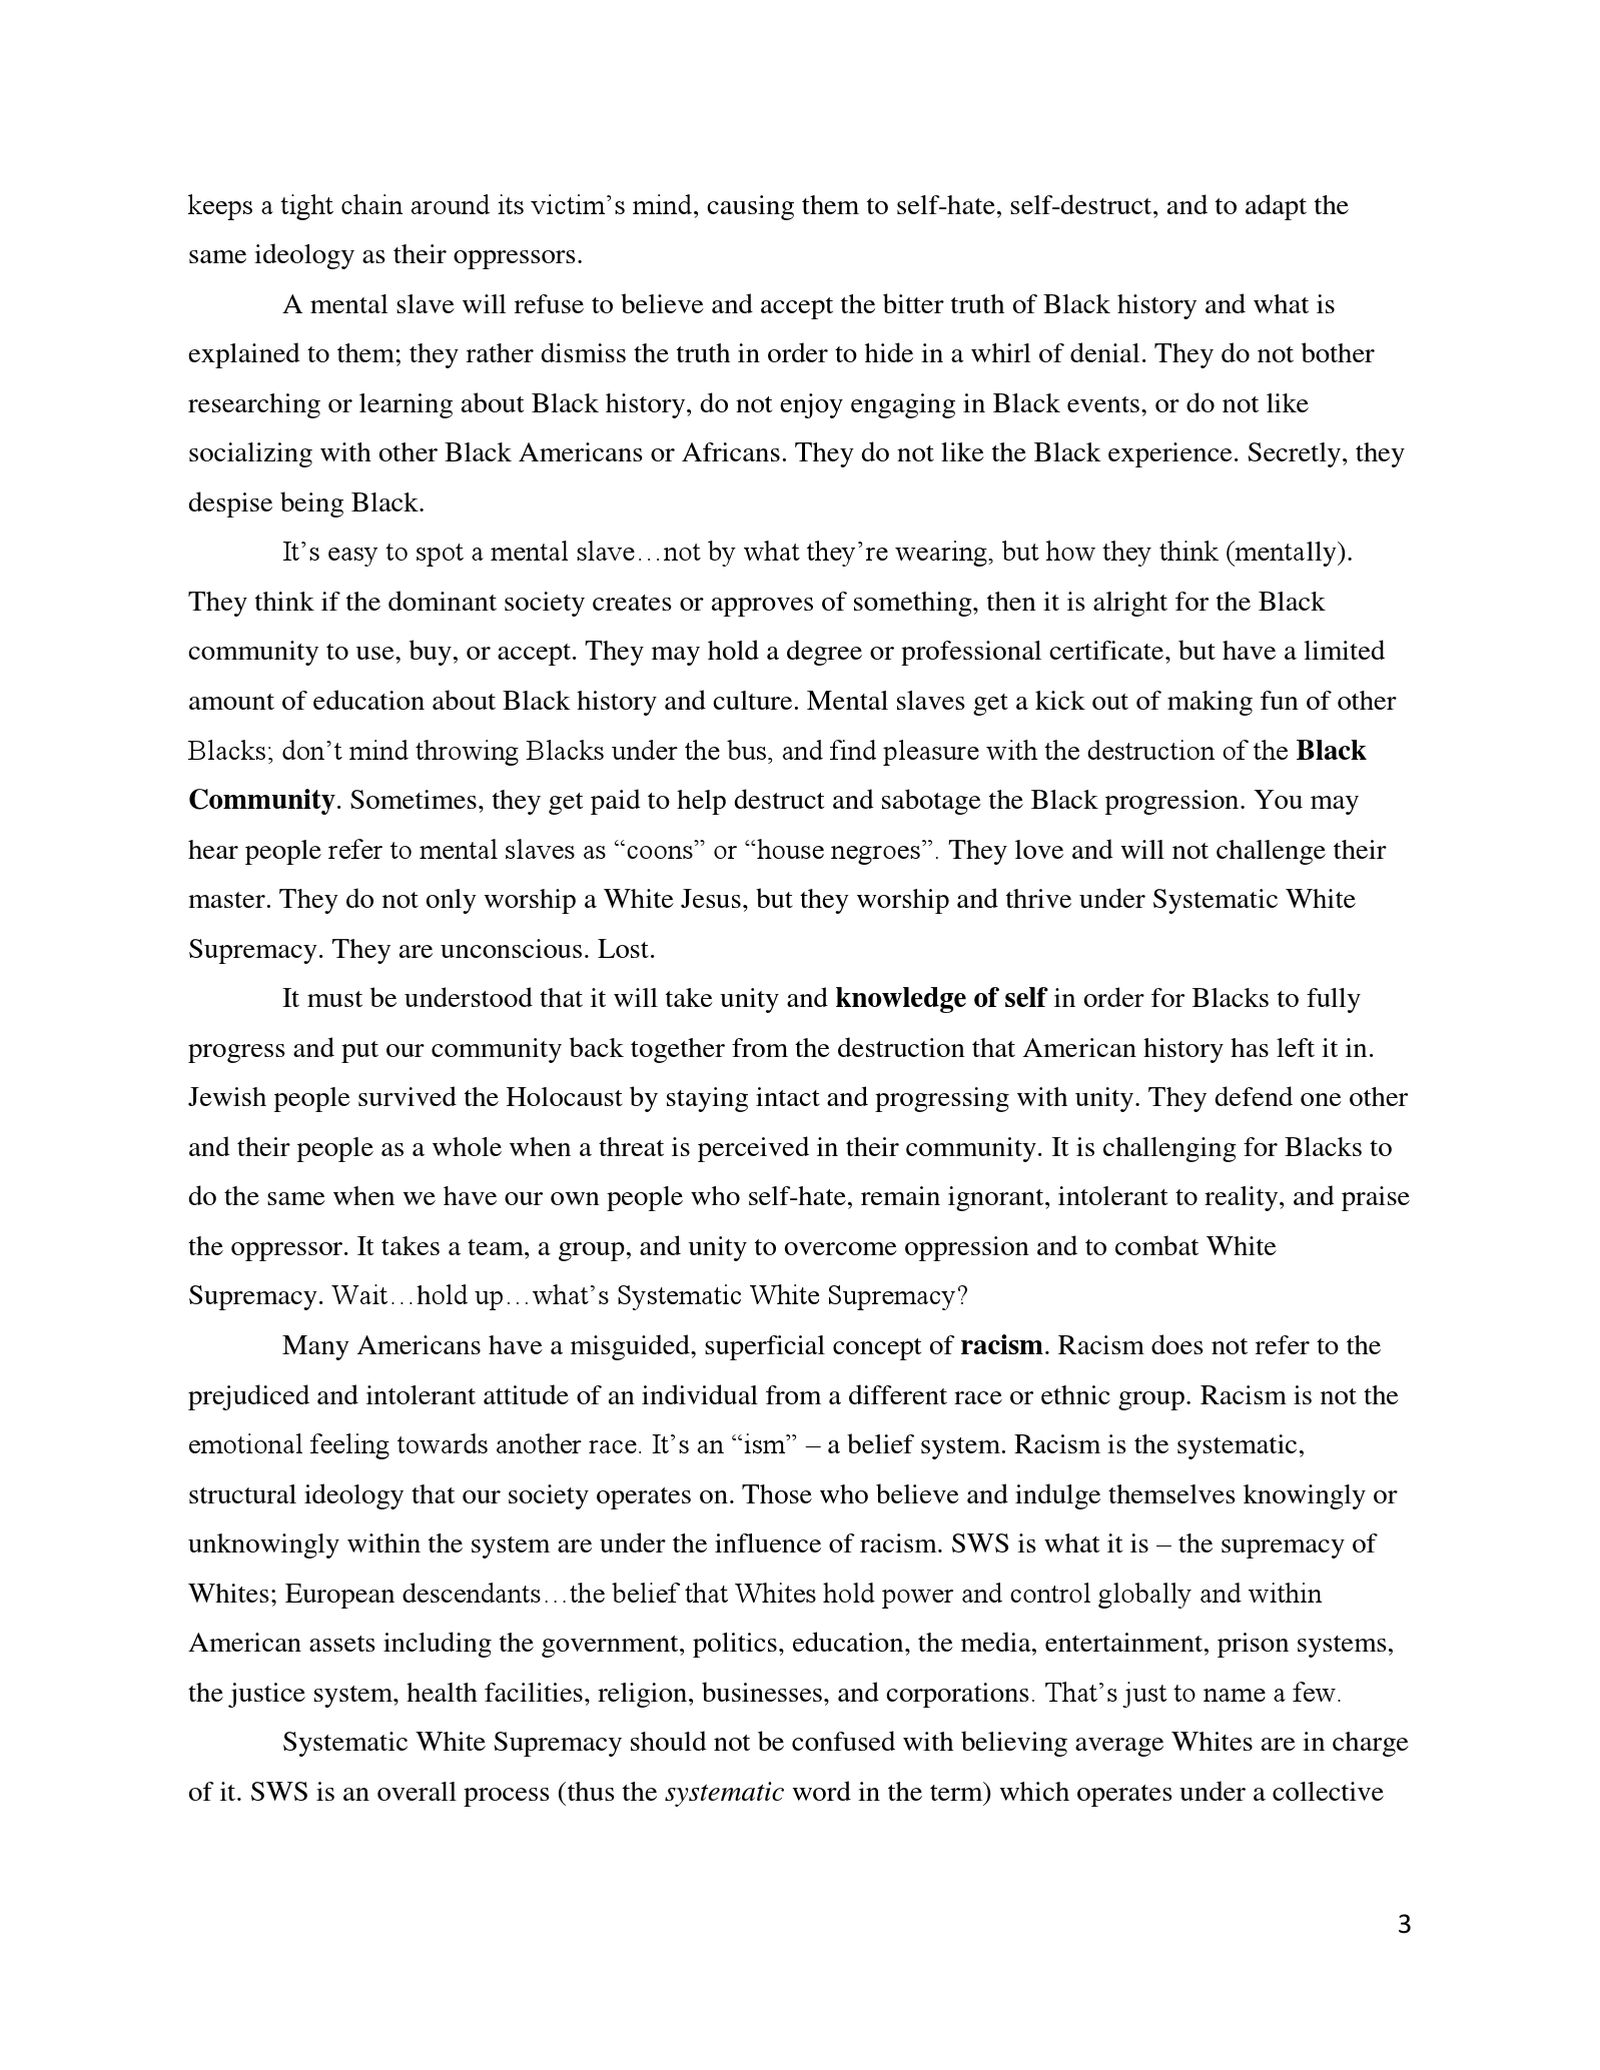 022 Racism Argumentative Essay Large Fantastic Topics Examples In Sports Full